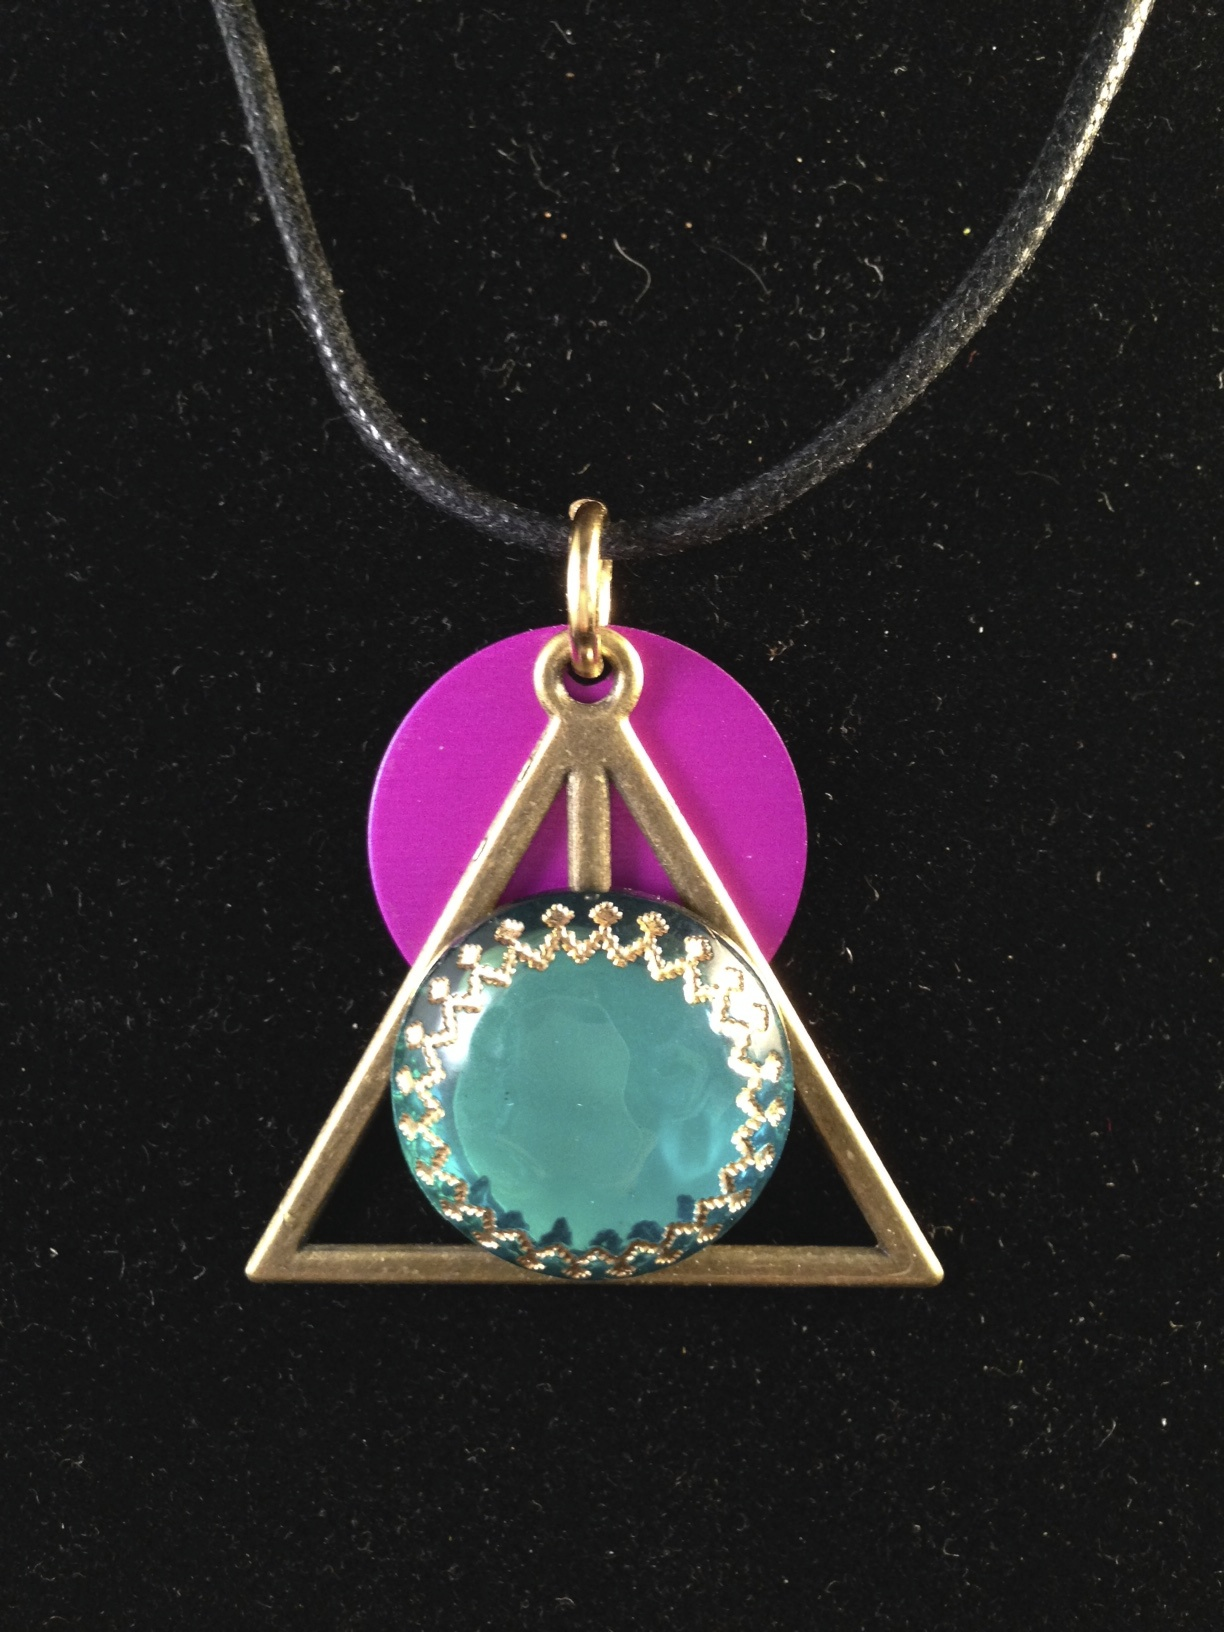 Triangle with Teal Jewel and Purple Energy Disk